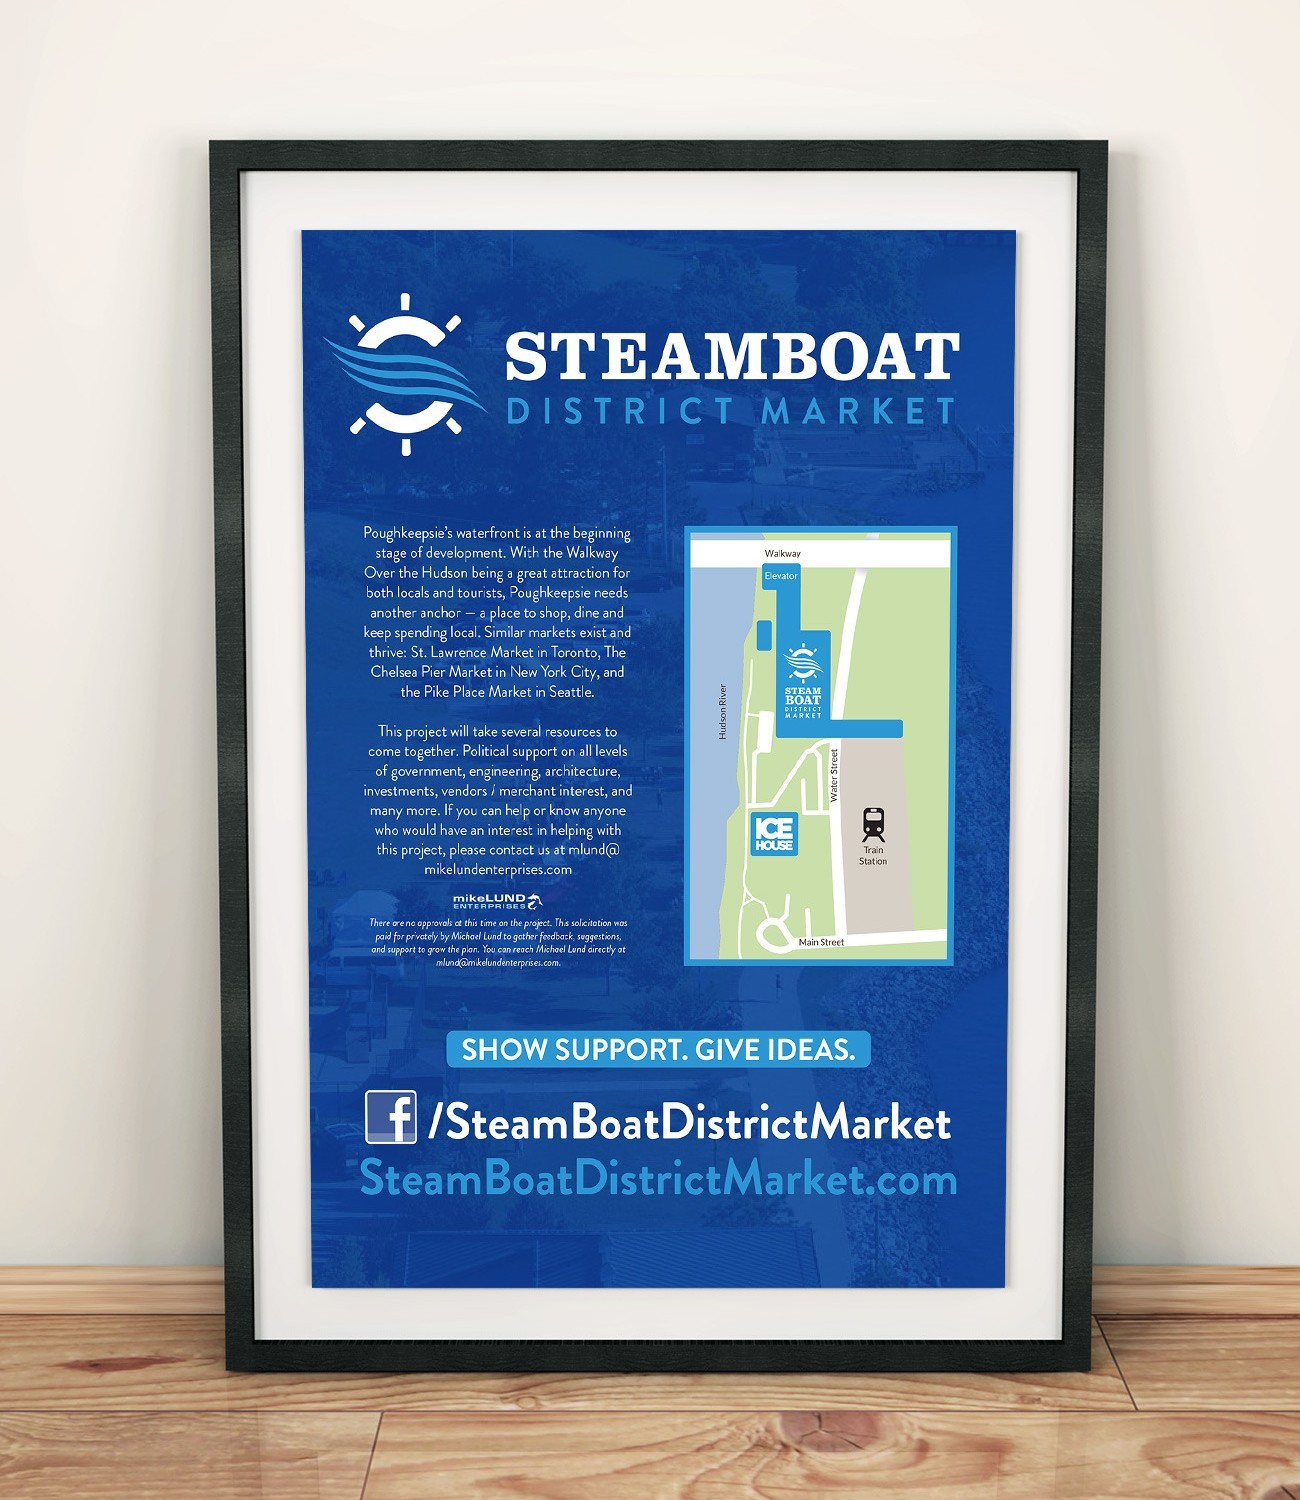 Steamboat District Market Poster, designed by Query Creative in the Hudson Valley